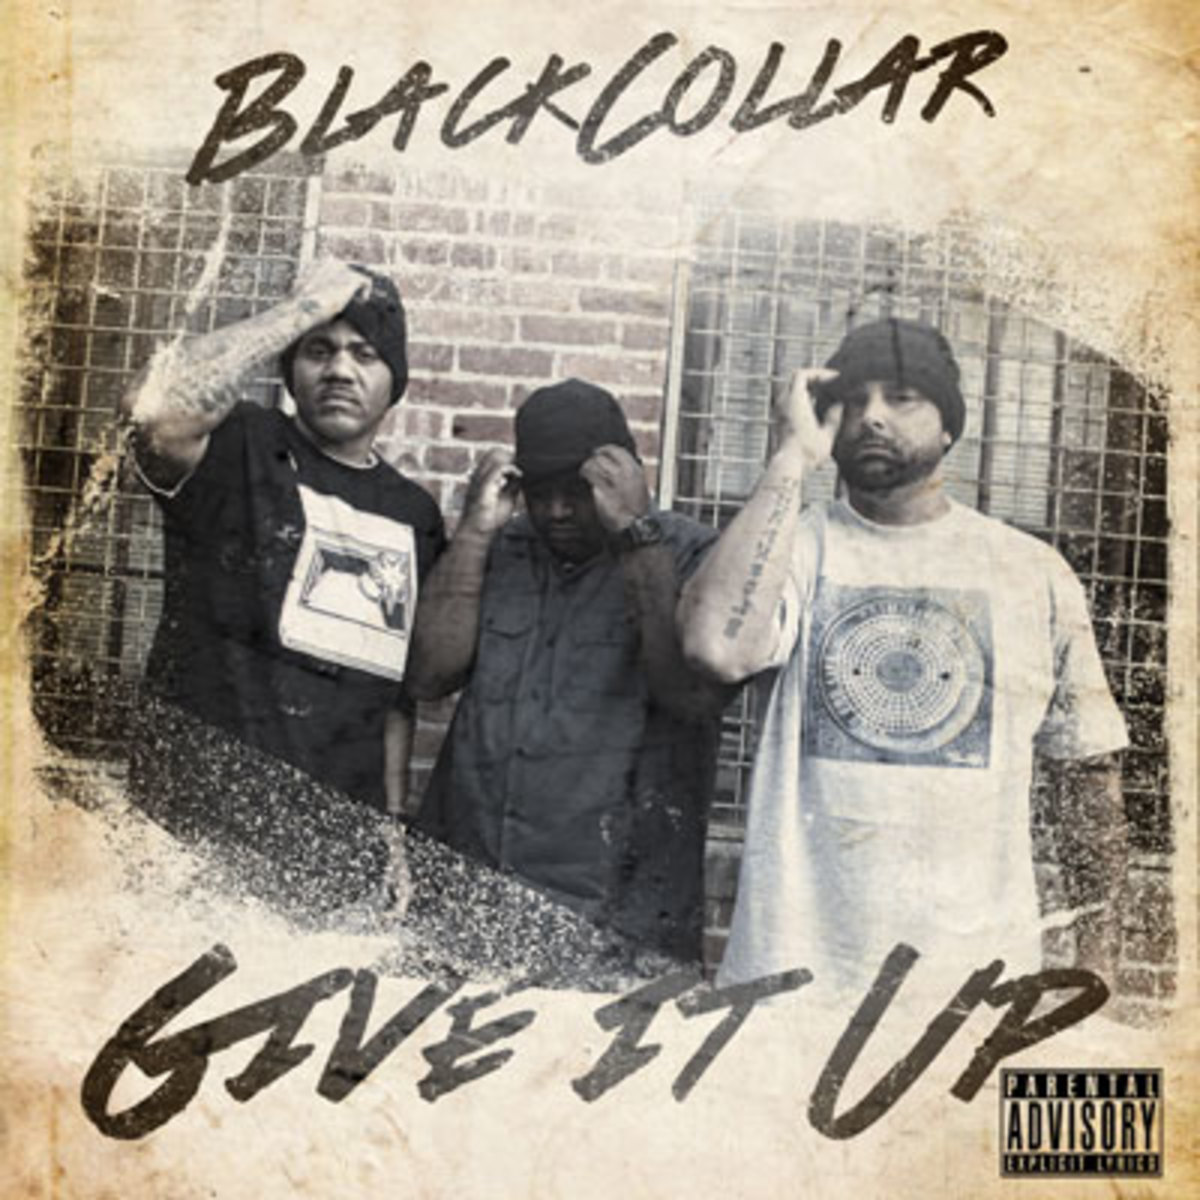 blackcollar-giveitup.jpg